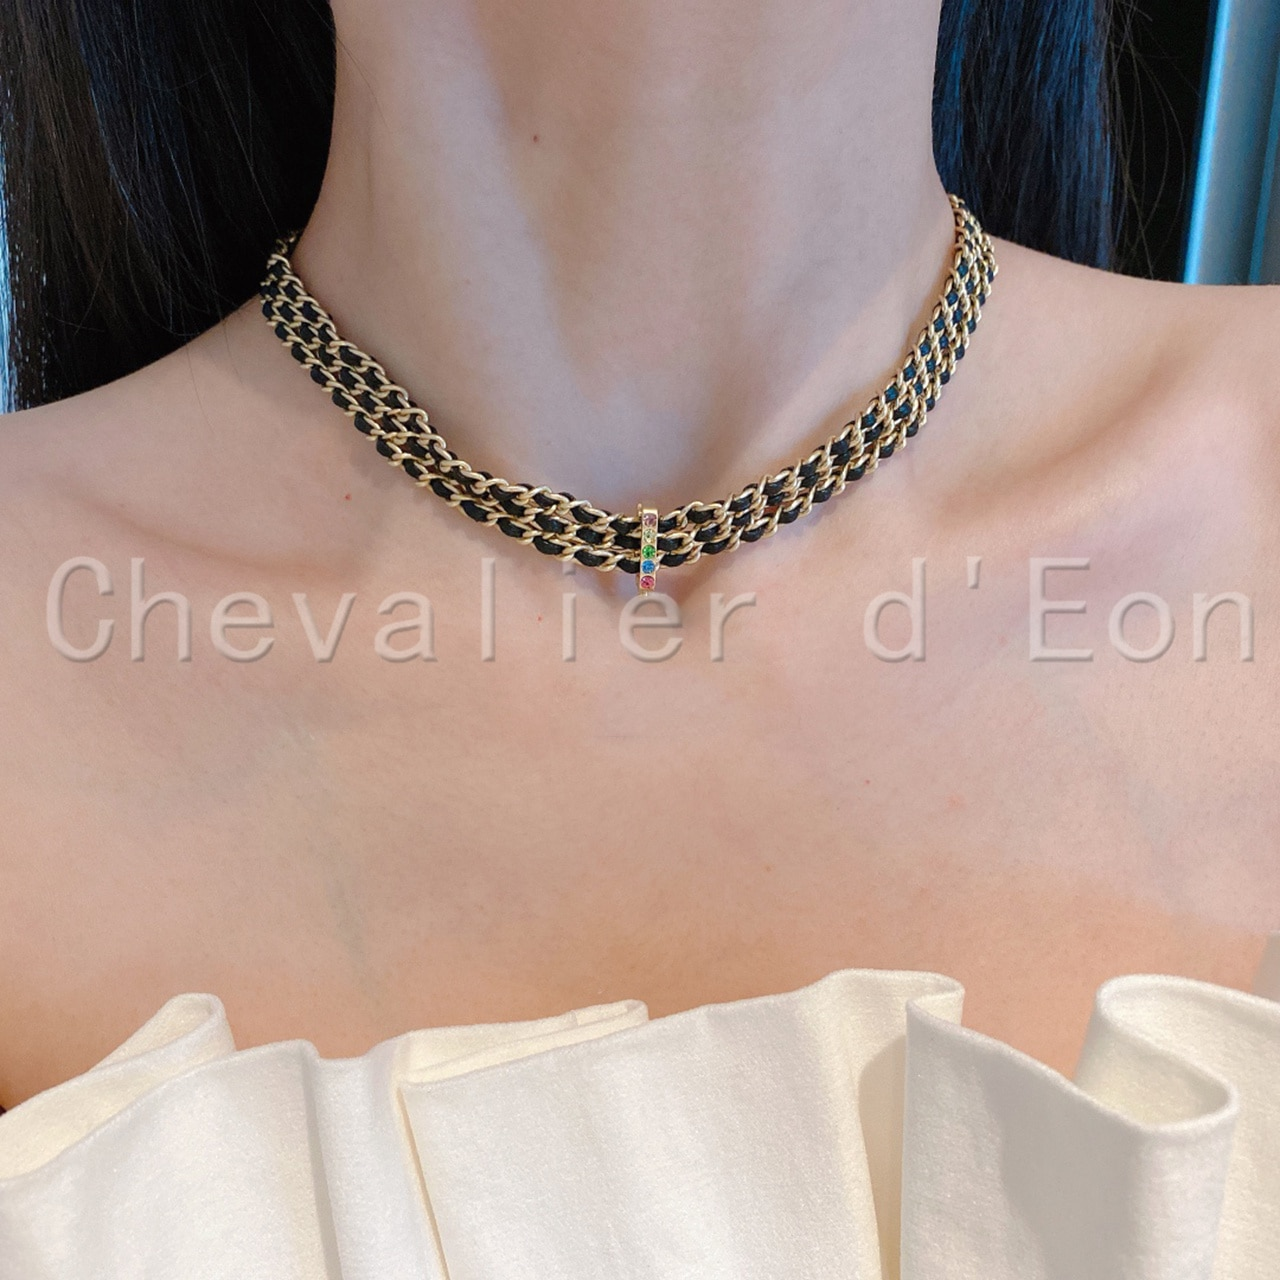 Chevalier d'Eon Vintage Multi-layer Chain Choker Necklace For Women Gold Color Fashion Punk Chain Necklaces Jewelry